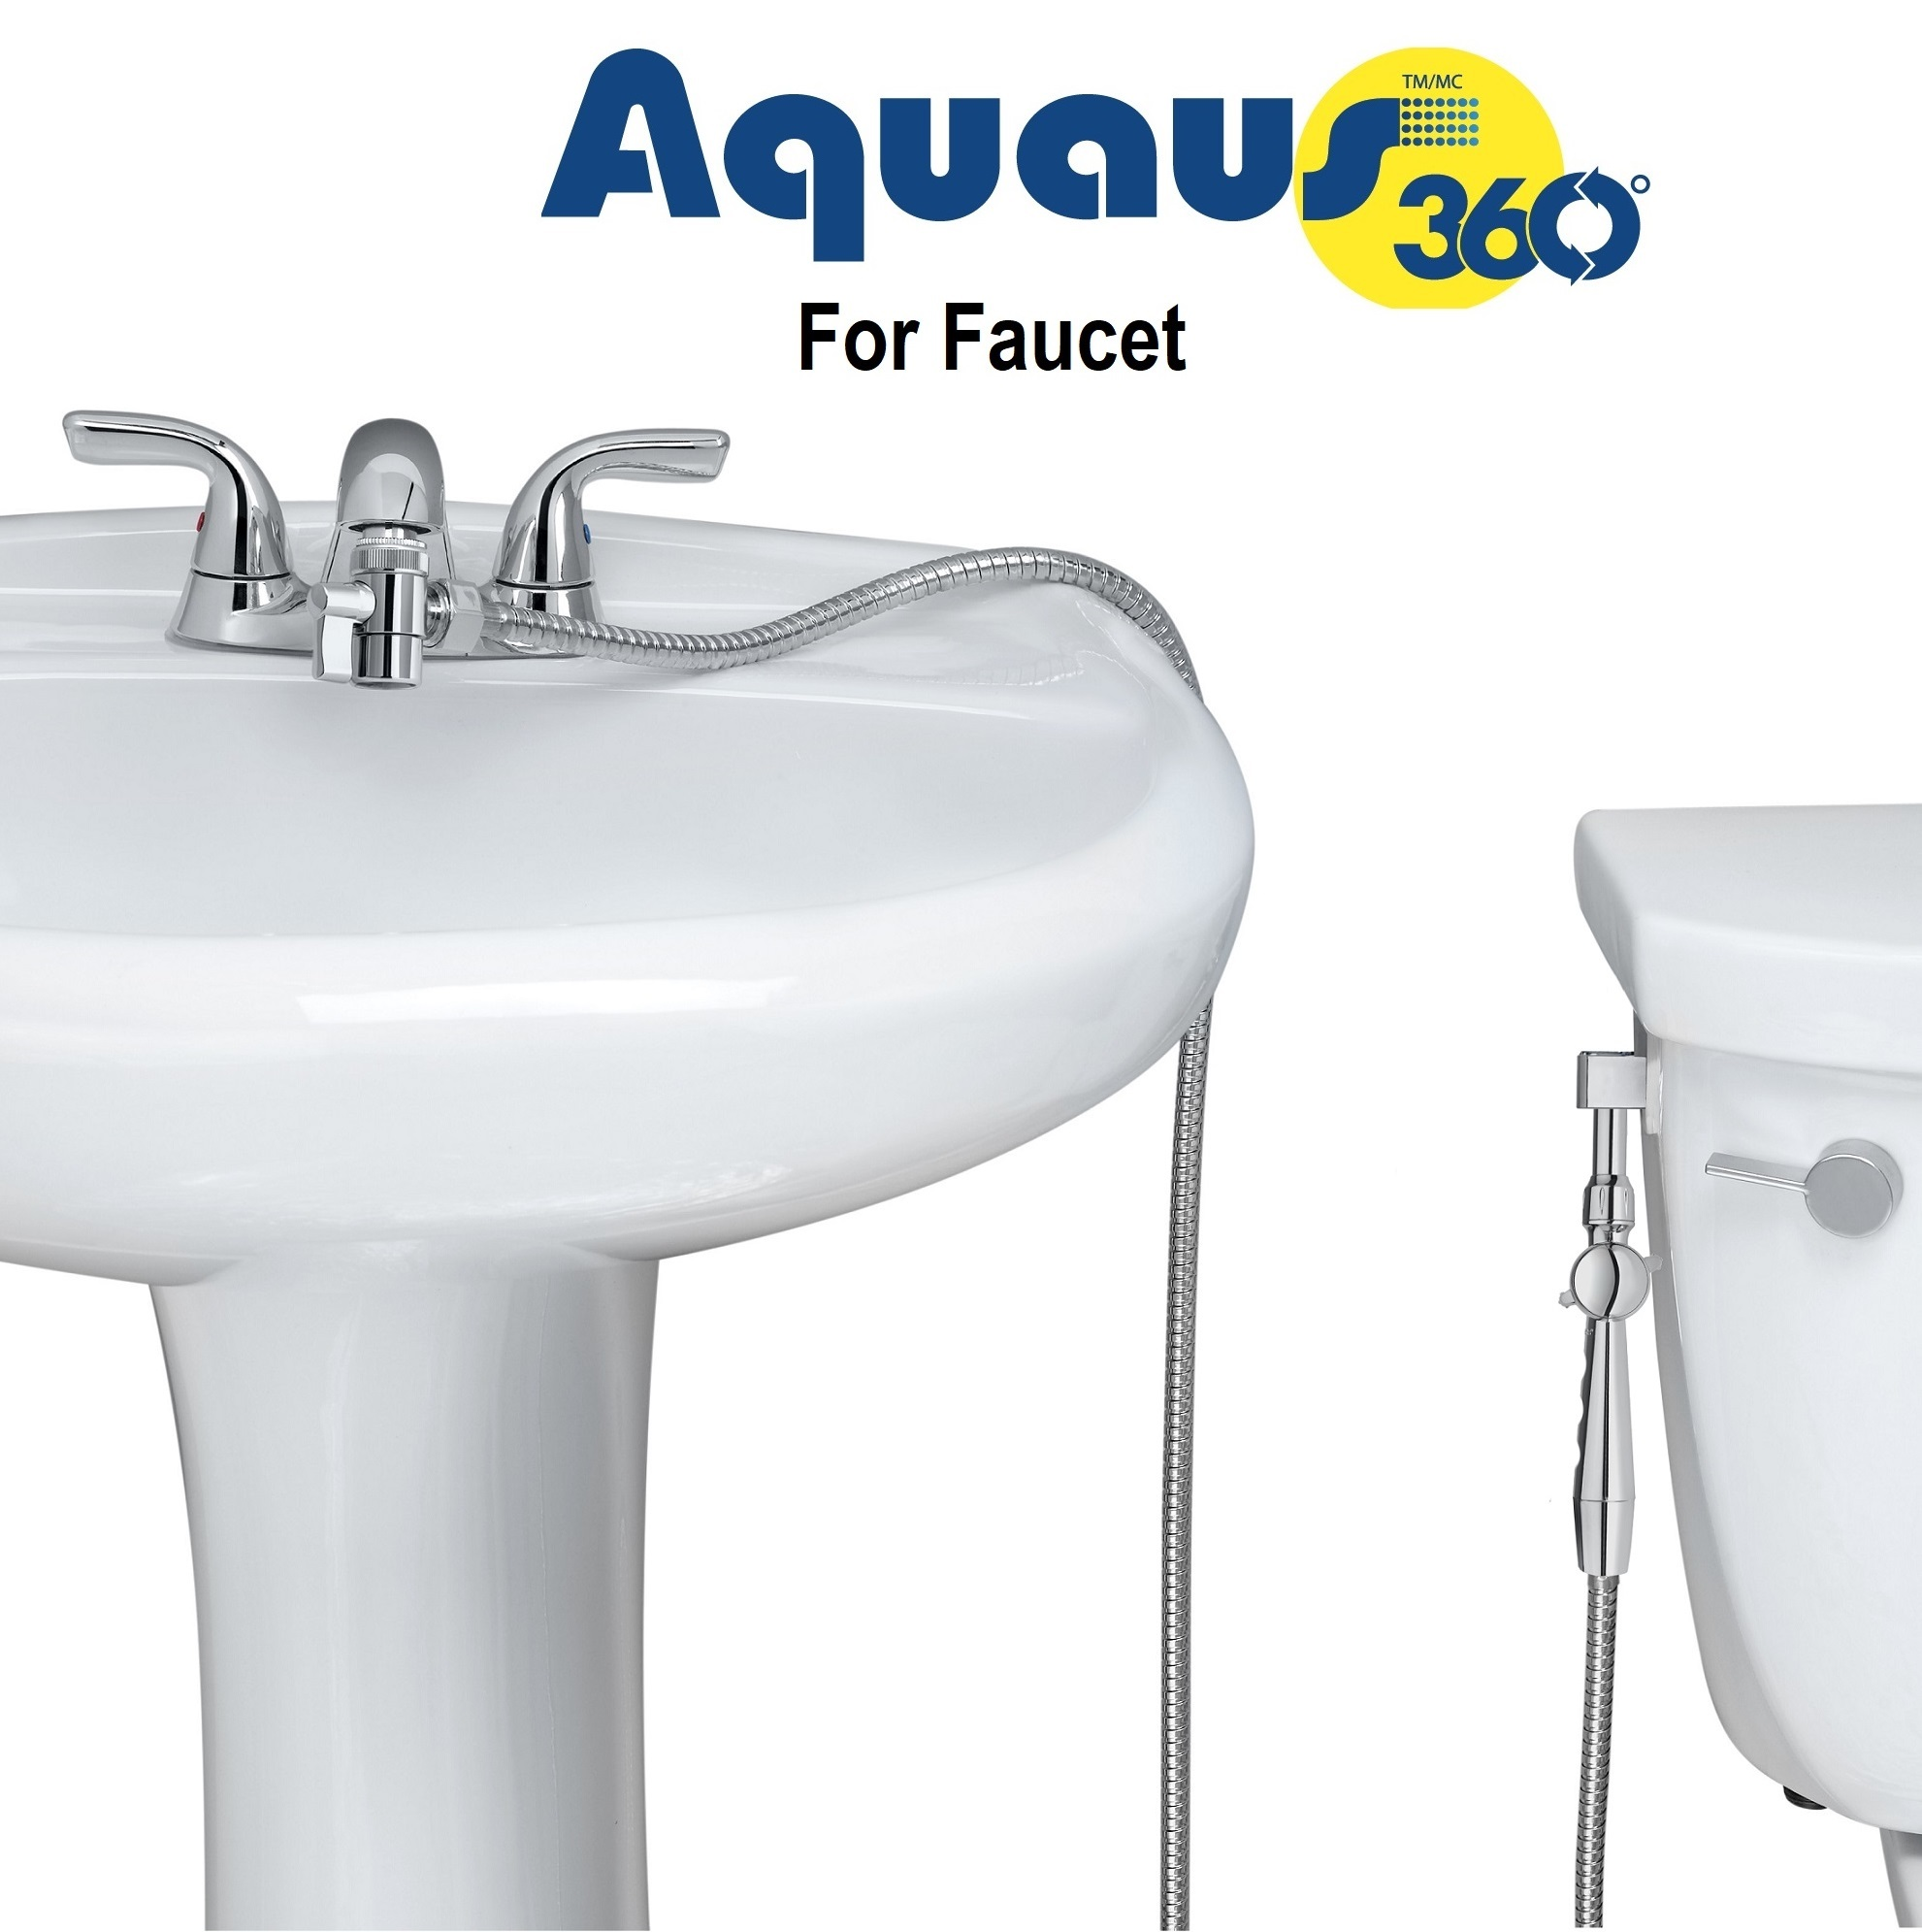 Aquaus 360 hand held bidet Box